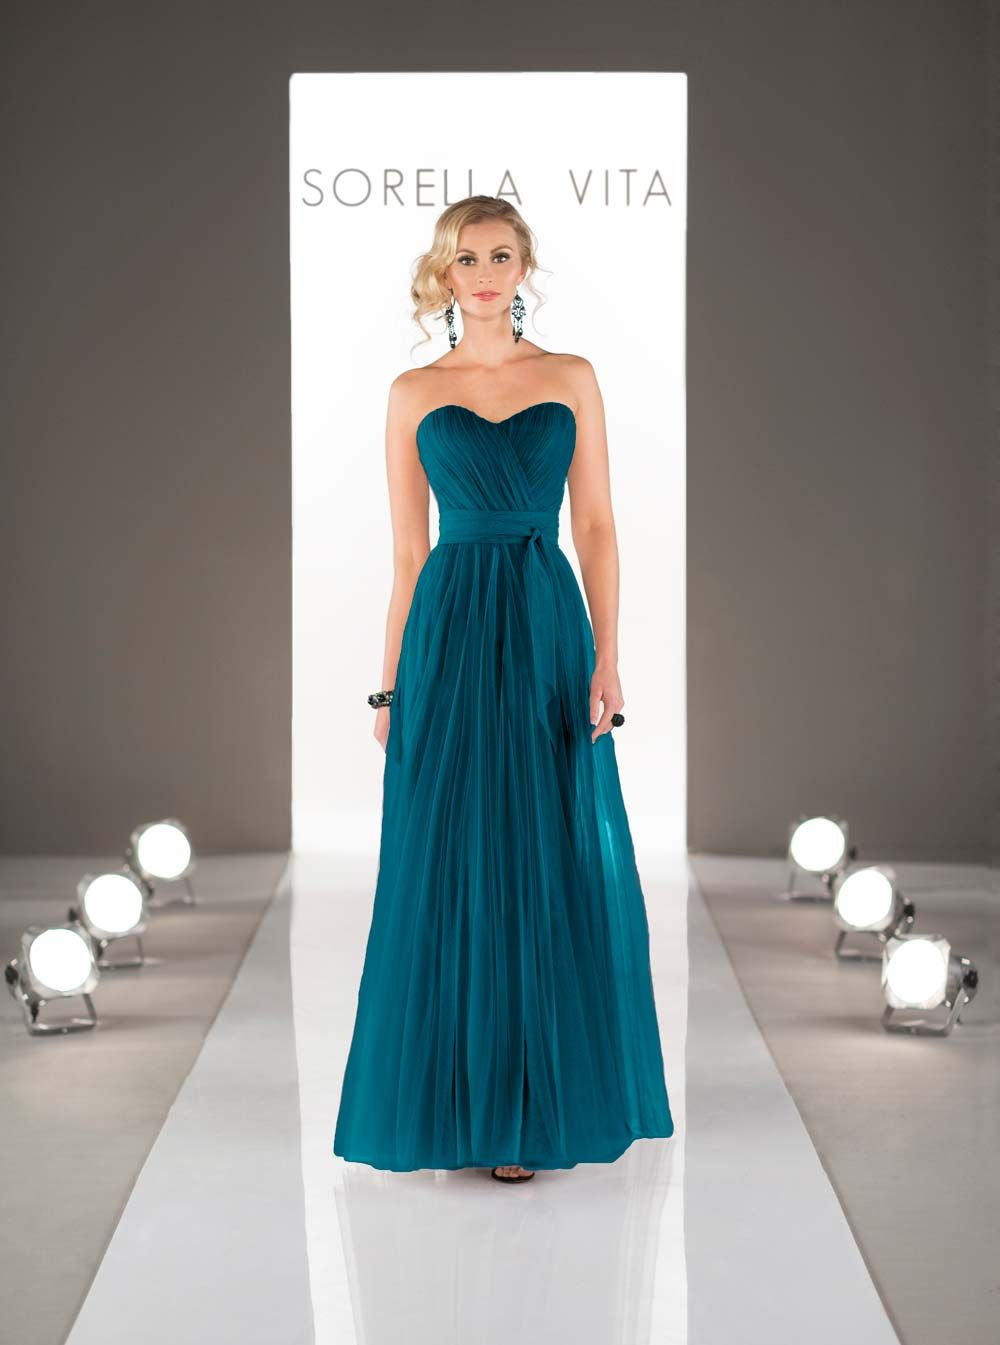 Teal Bridesmaid Dresses  15 of Our Favourite Styles  18571b094ada